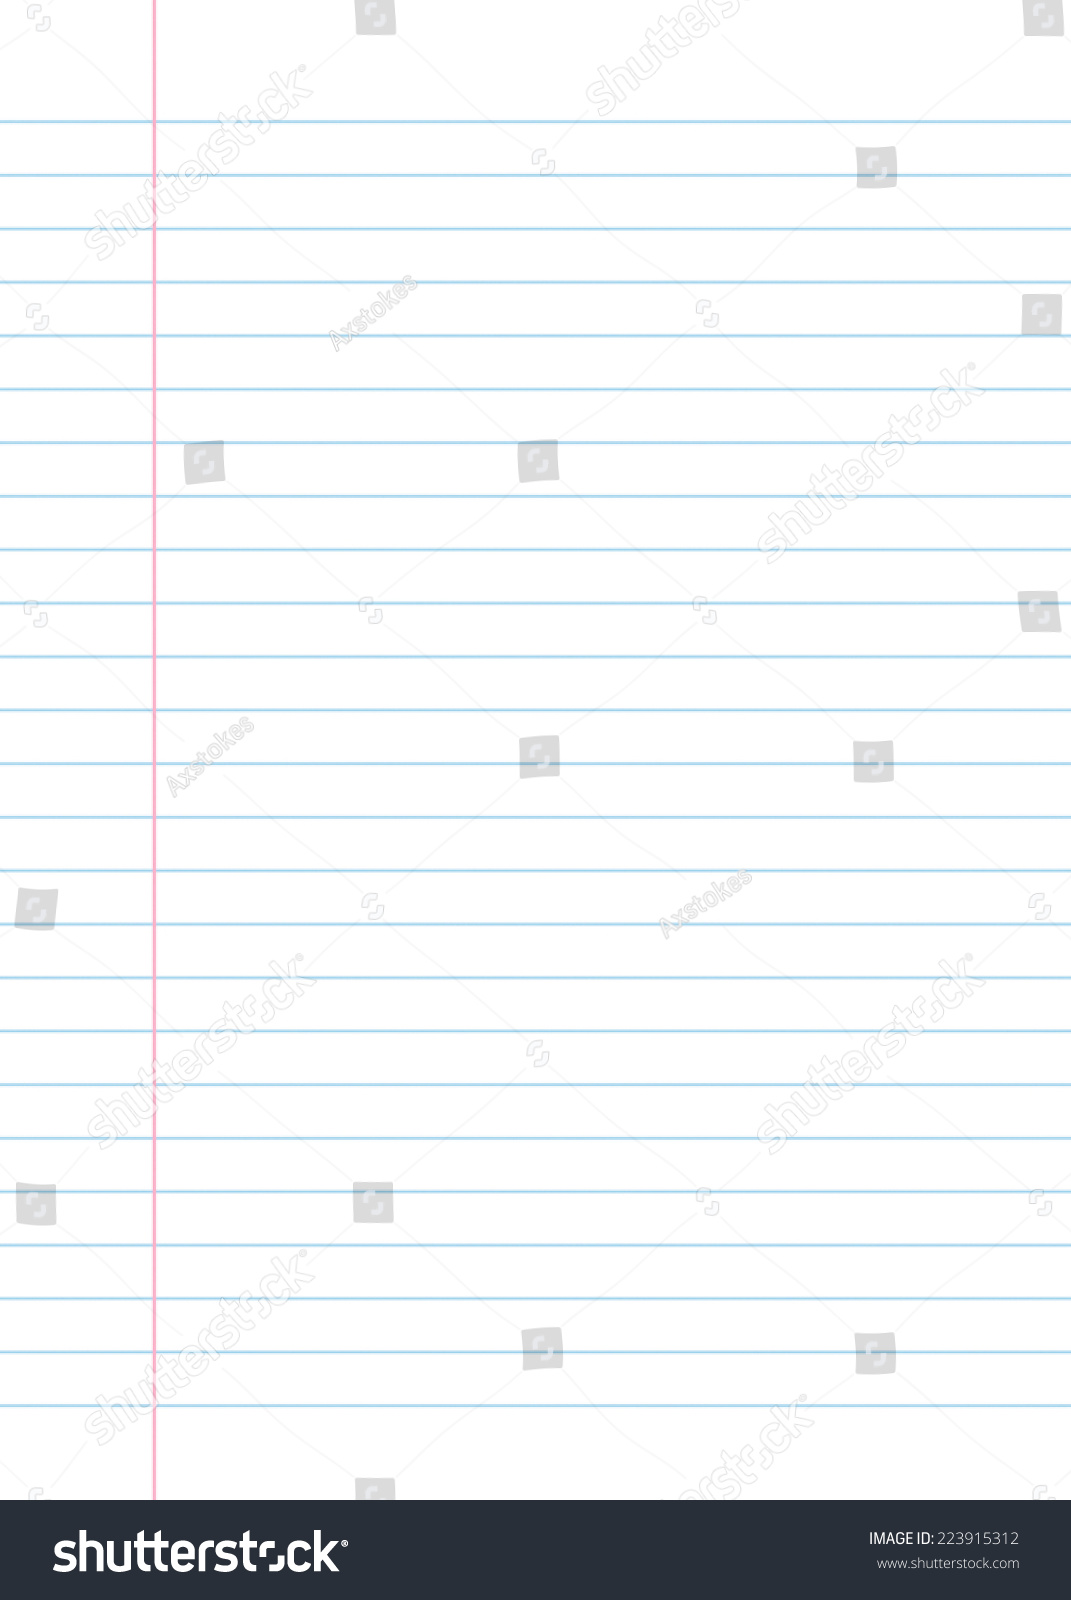 Blank Lined Paper Texture From A Notebook Or Notepad. Great For A Writing  Background Or  Blank Line Paper